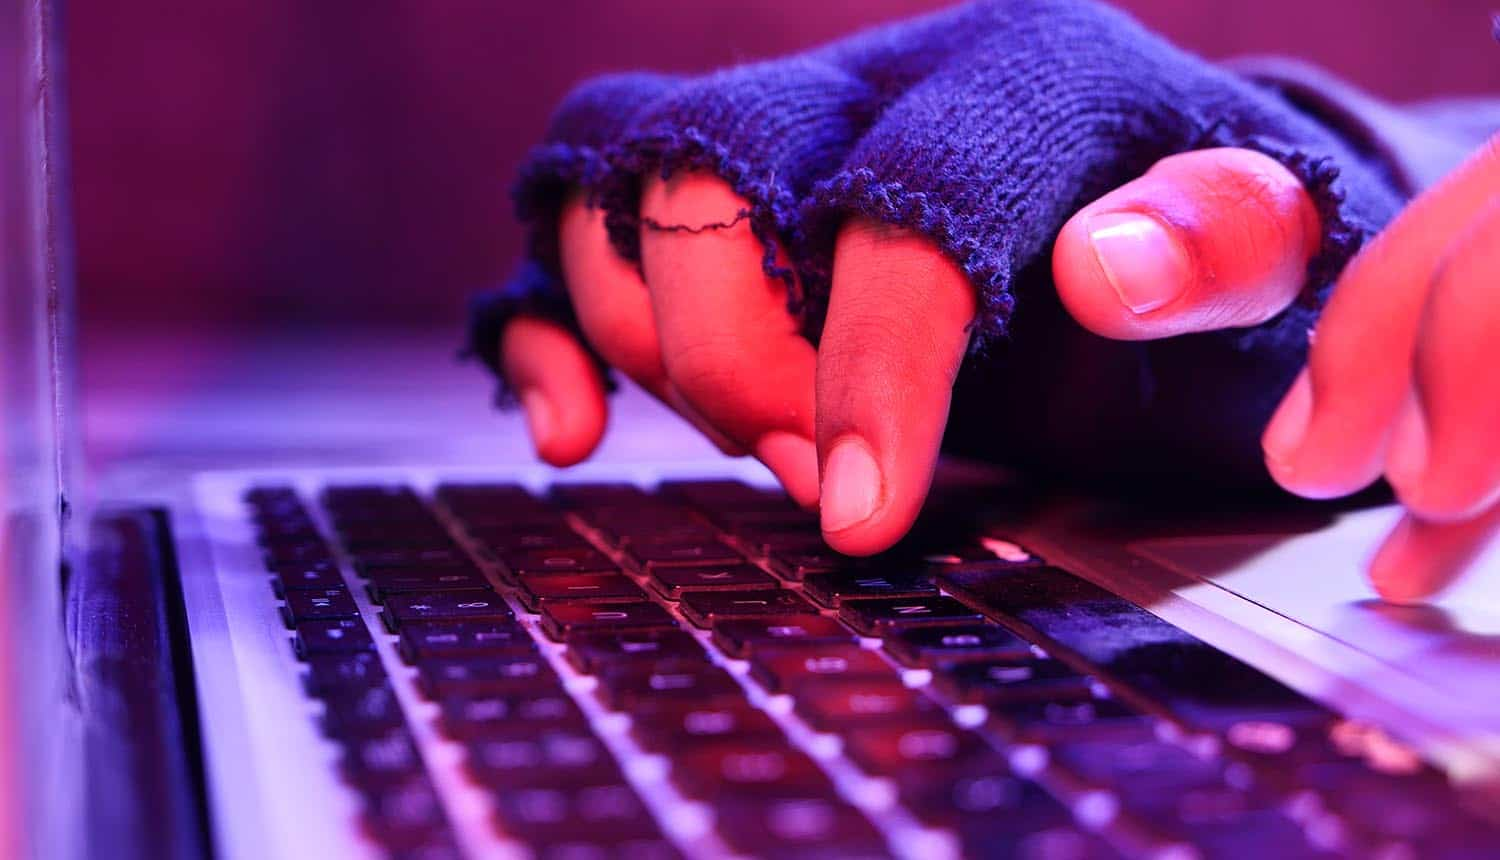 Close up of hacker hand stealing data from laptop showing ransomware attack by LockBit Ransomware gang